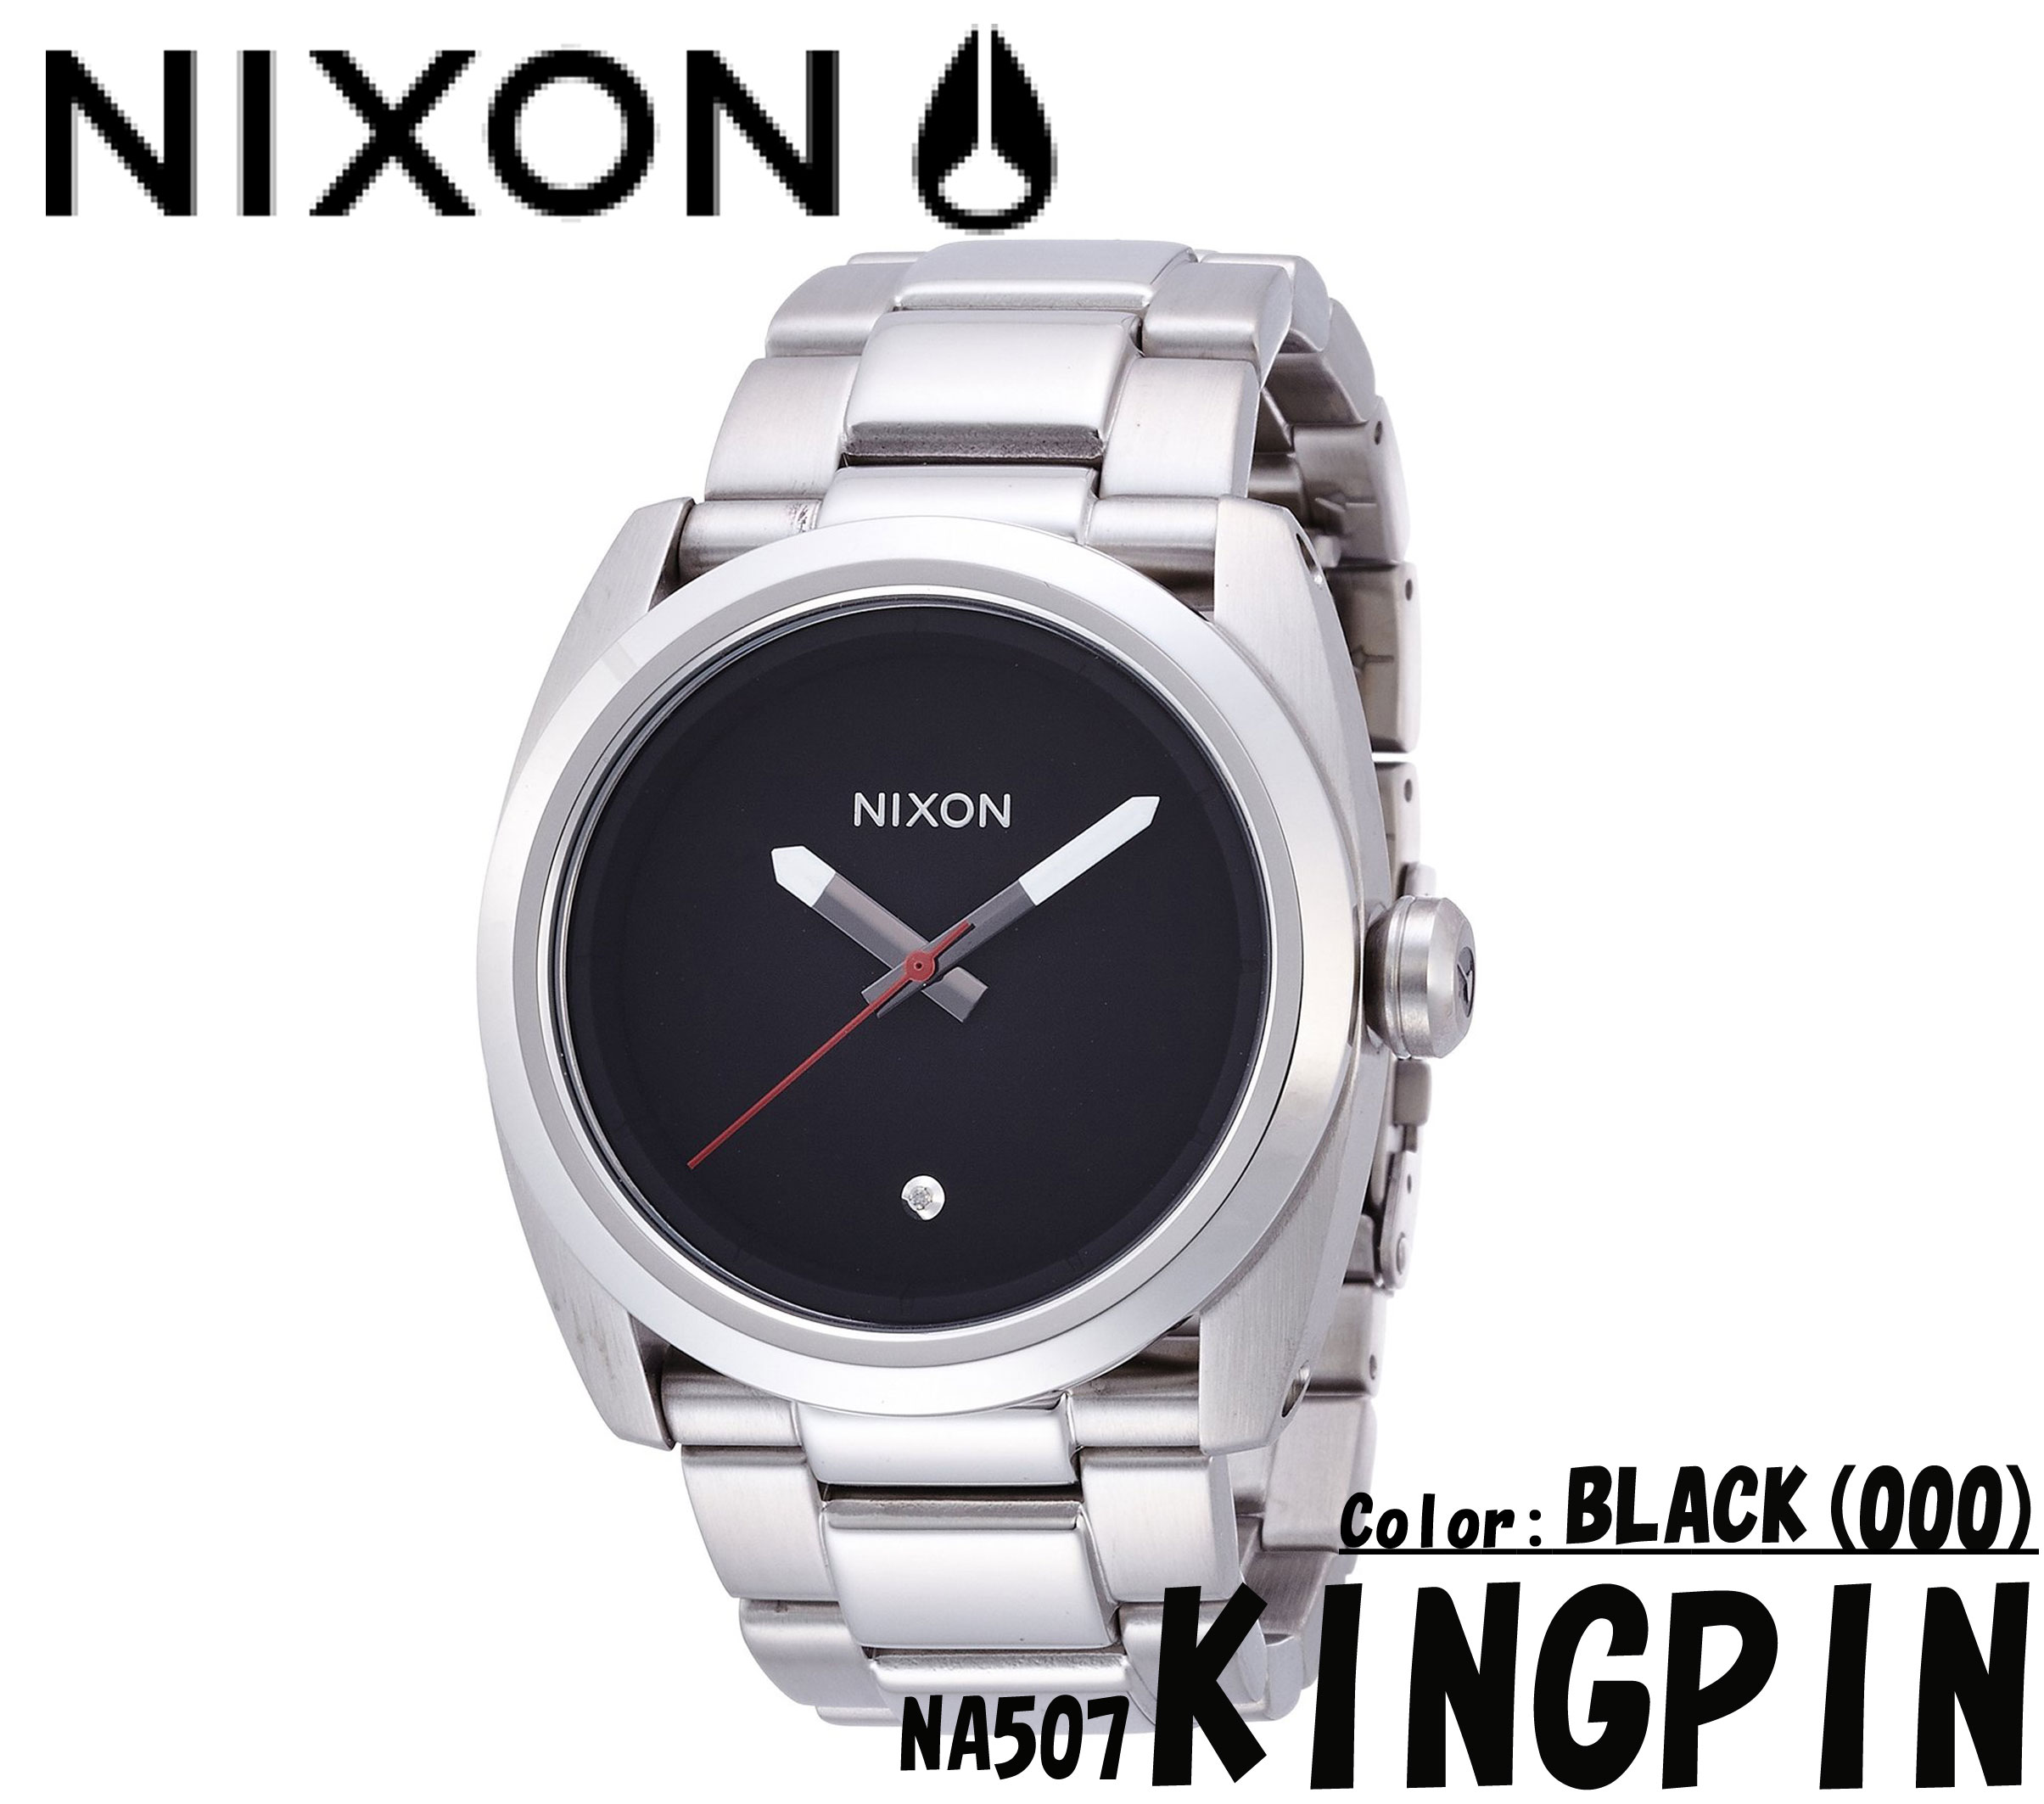 nixon_watch_kingpin_black_mein2